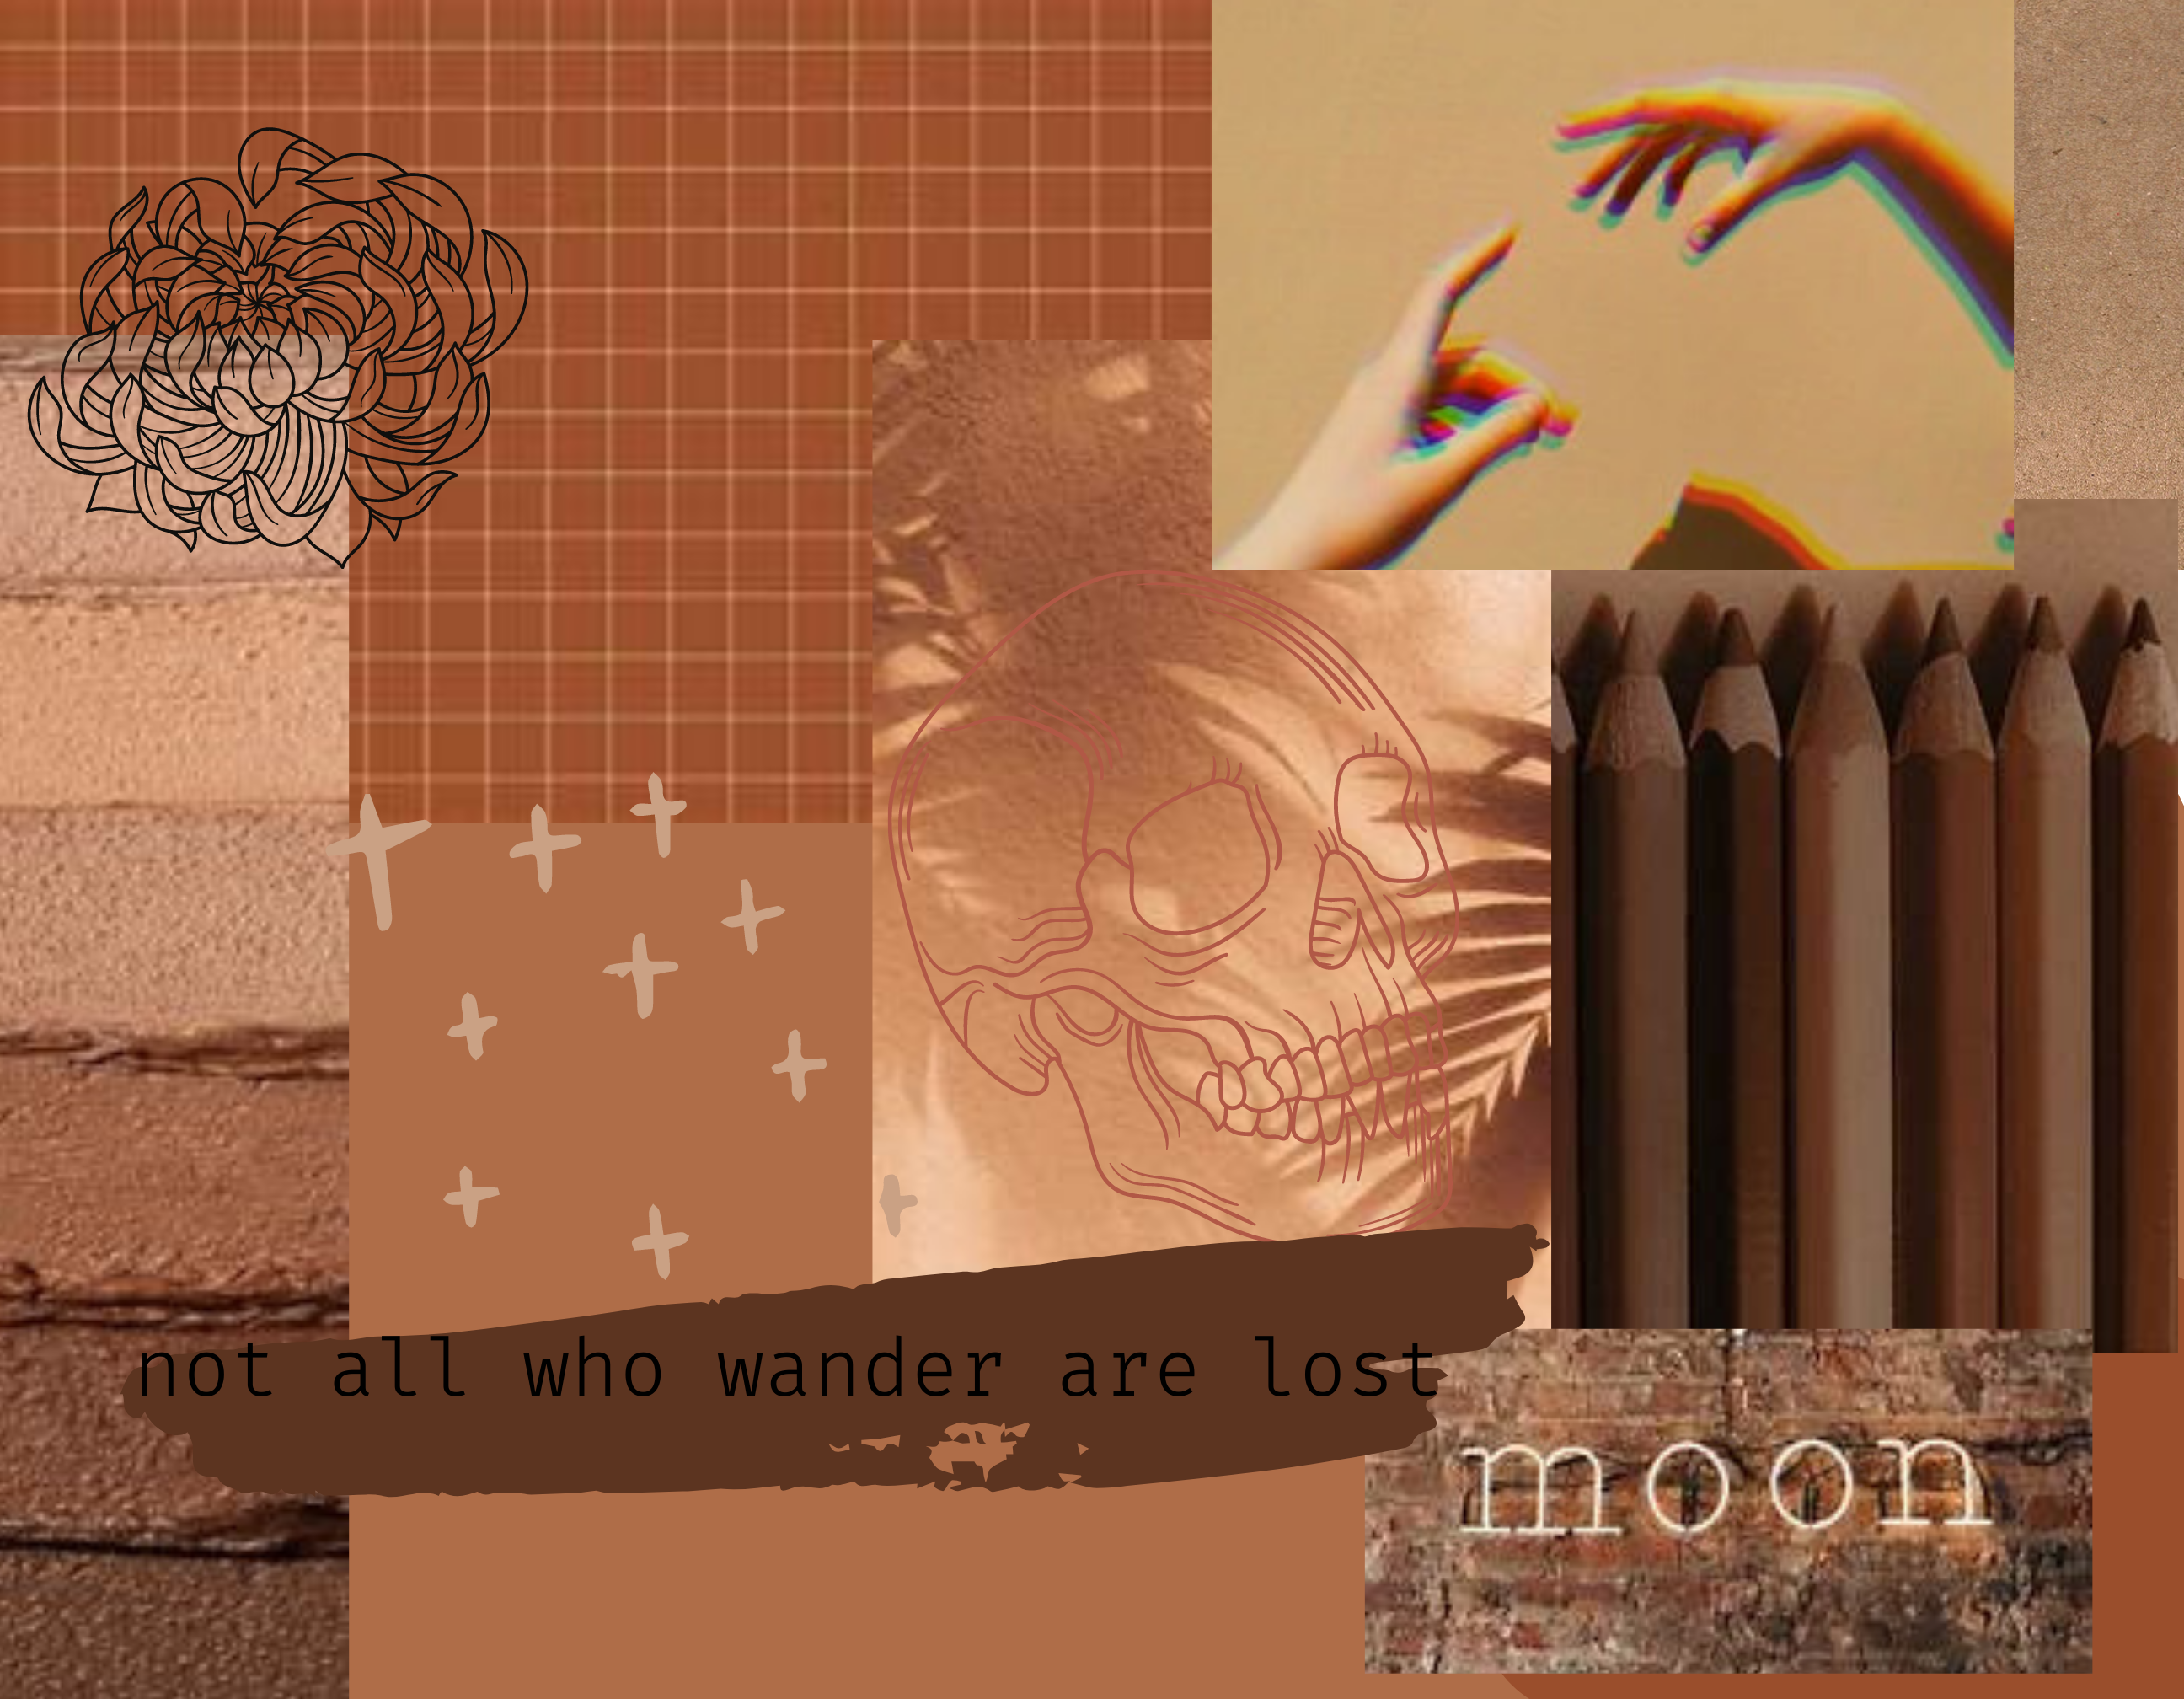 Aesthetic Collage Brown 𝓷𝓸𝓽 𝓪𝓵𝓵 𝔀𝓱𝓸 𝔀𝓪𝓷𝓭𝓮𝓻 𝓪𝓻𝓮 𝓵𝓸𝓼𝓽